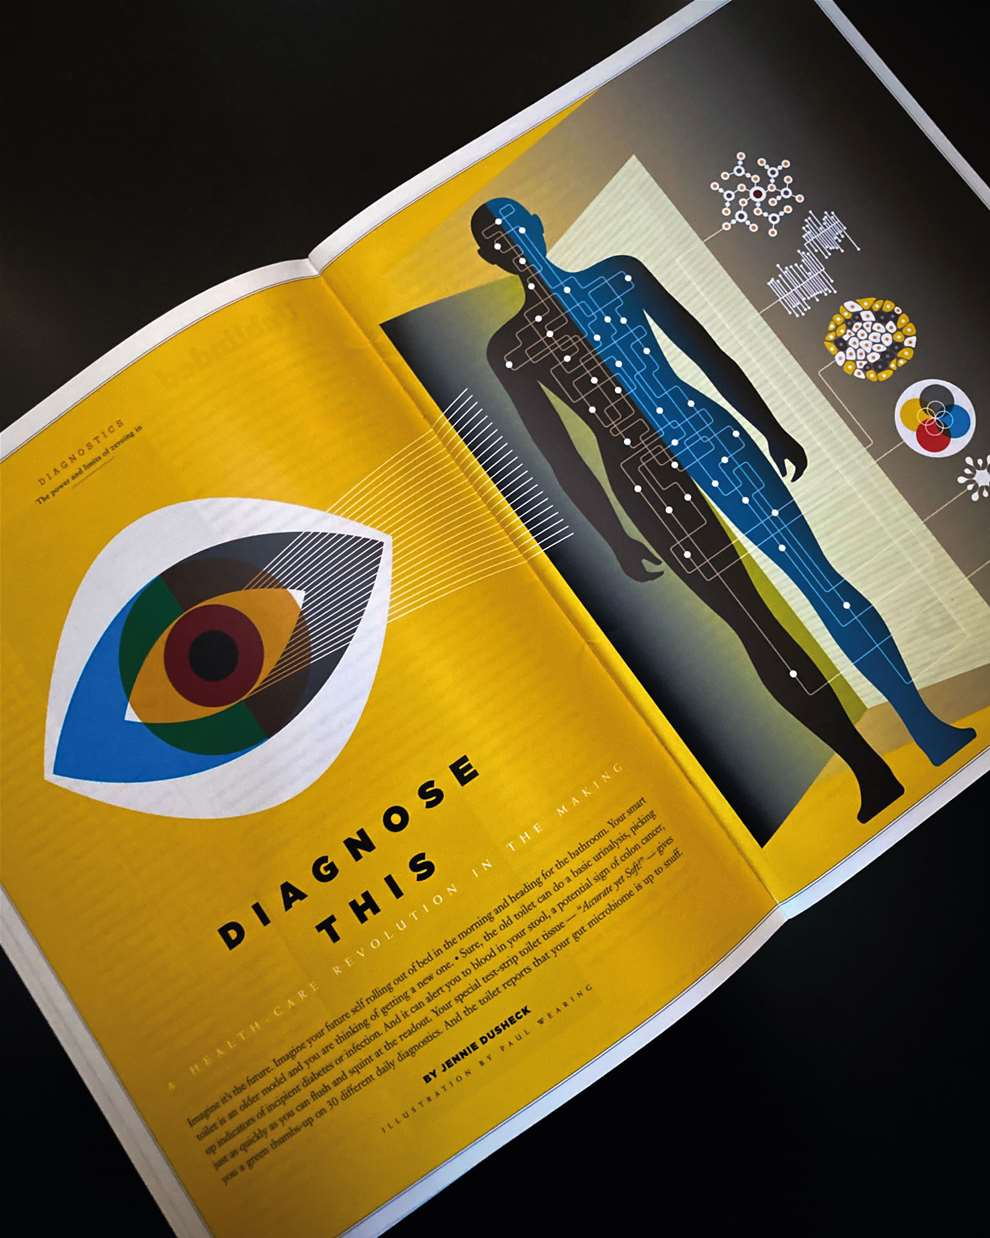 Paul Wearing, Interior spread of medical magazine showing a conceptual and scientific illustration of a human body.